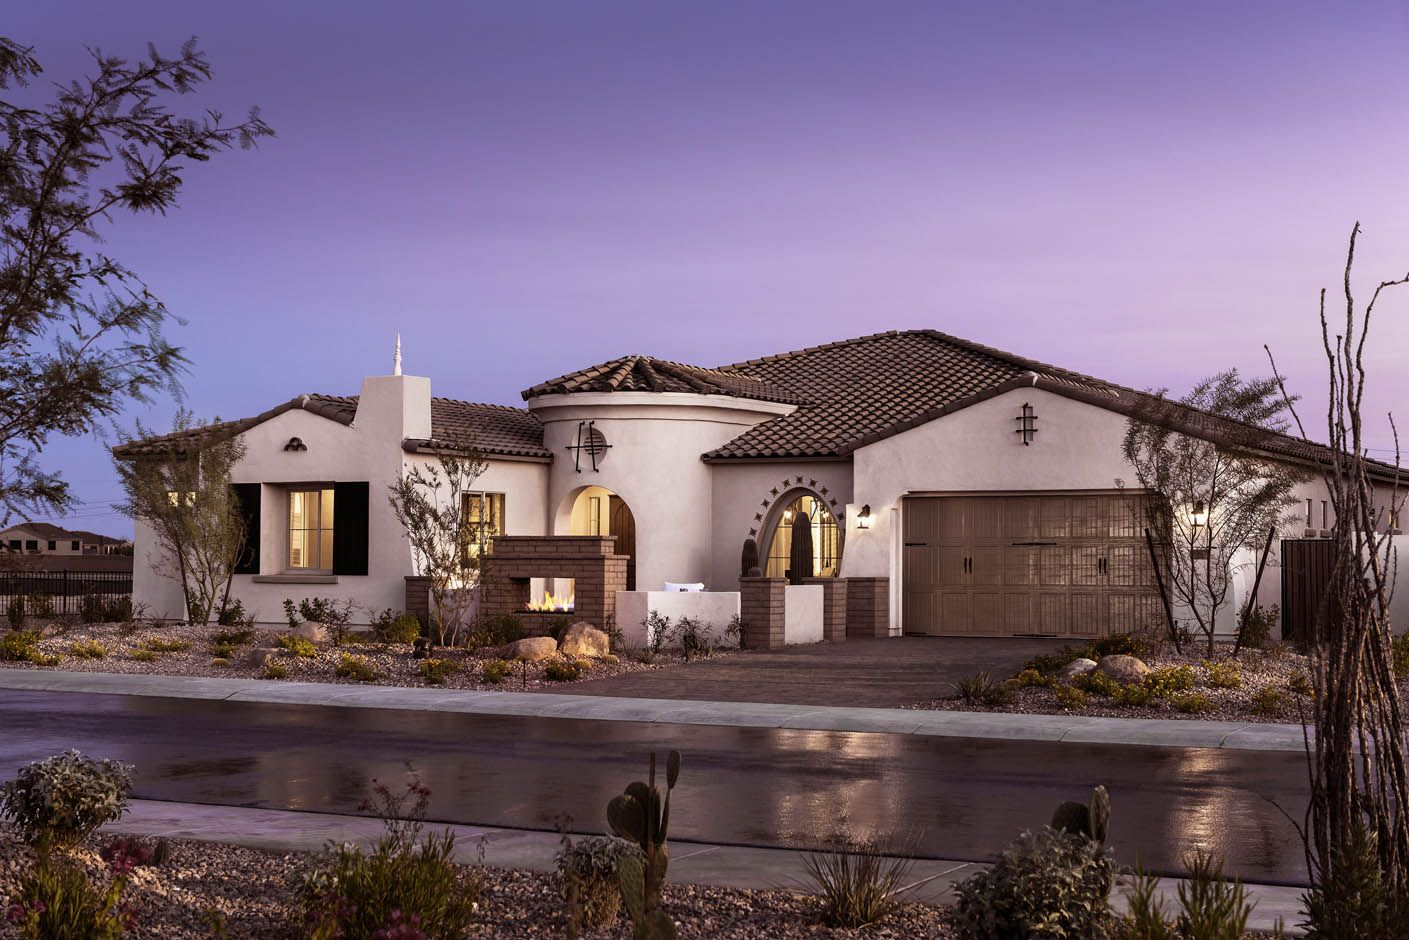 Single Family for Active at Pinnacle 9238 W. Via Del Sol Peoria, Arizona 85383 United States